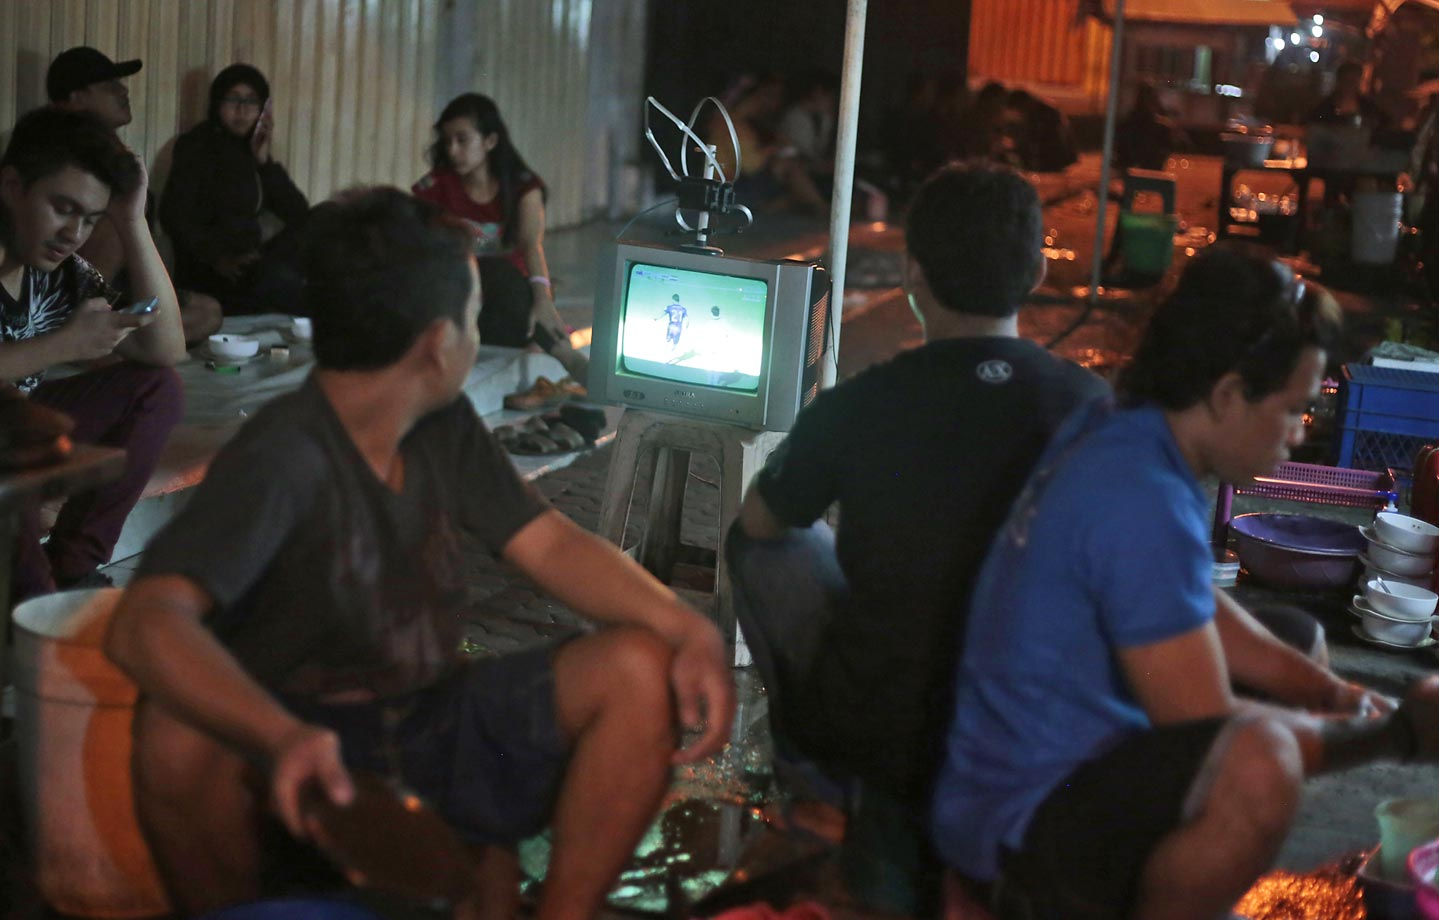 Indonesians watch at a road-side food stall in Surabaya, East Java, Indonesia.